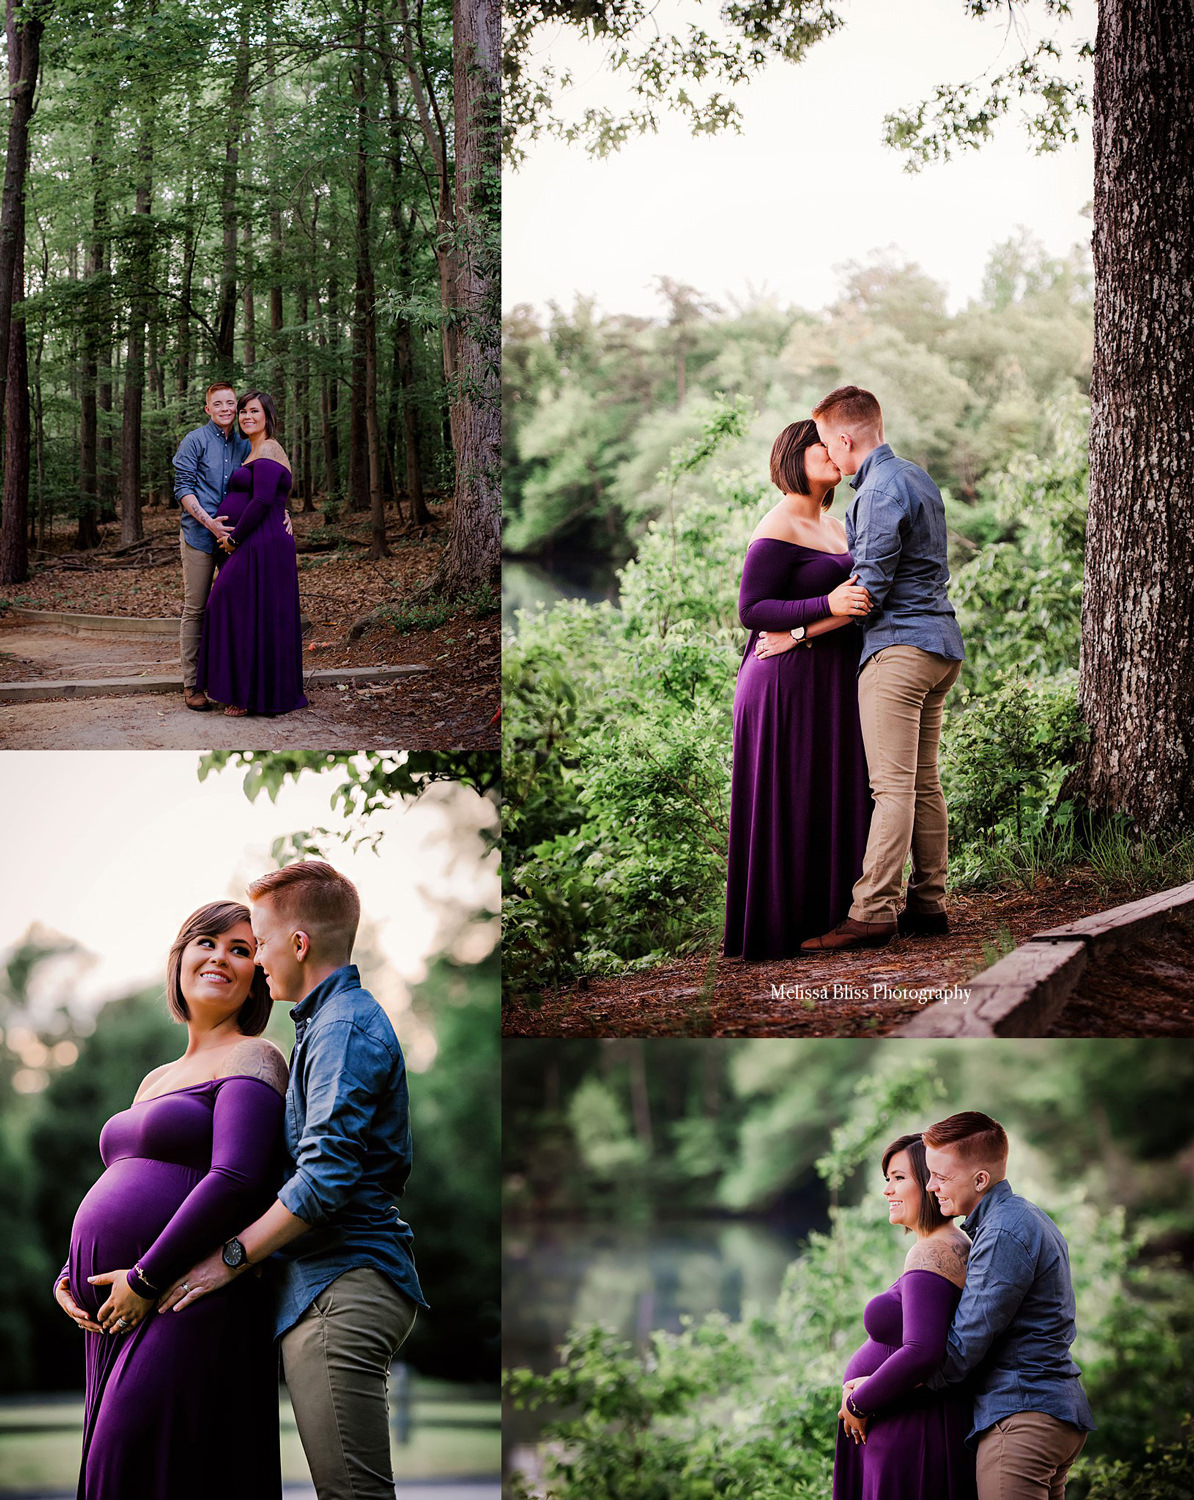 melissablissphotography-hampton-roads-maternity-photographer.jpg